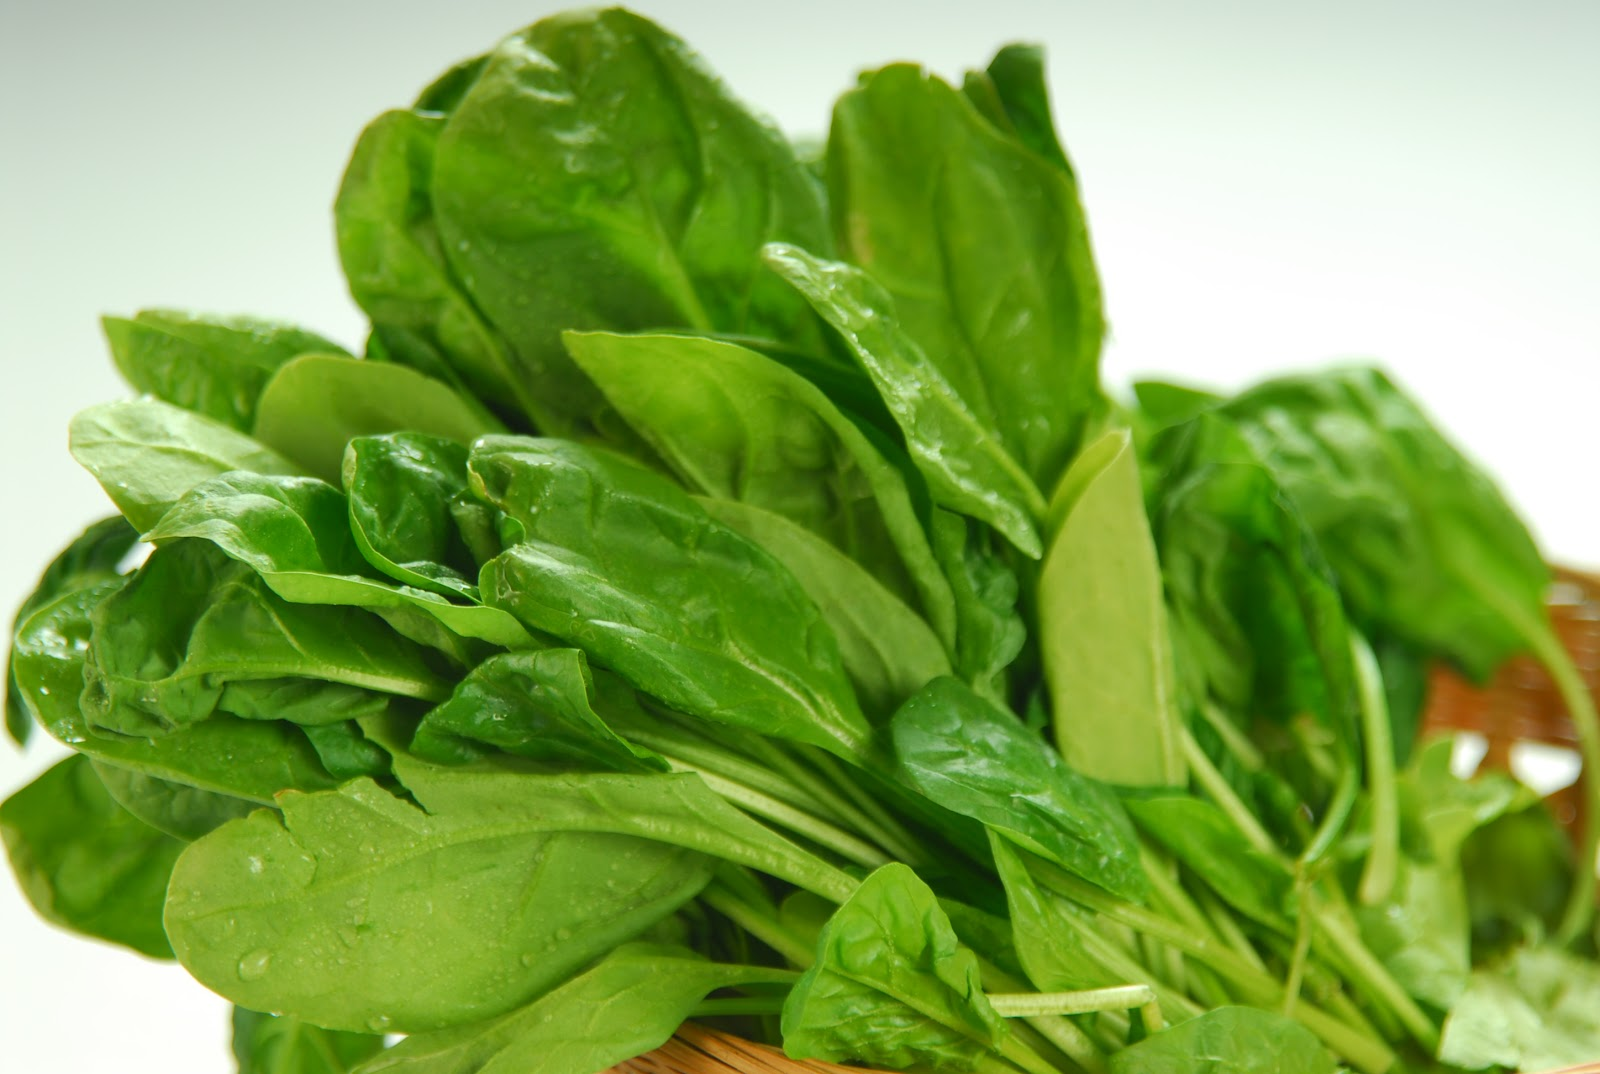 Benefits of Spinach